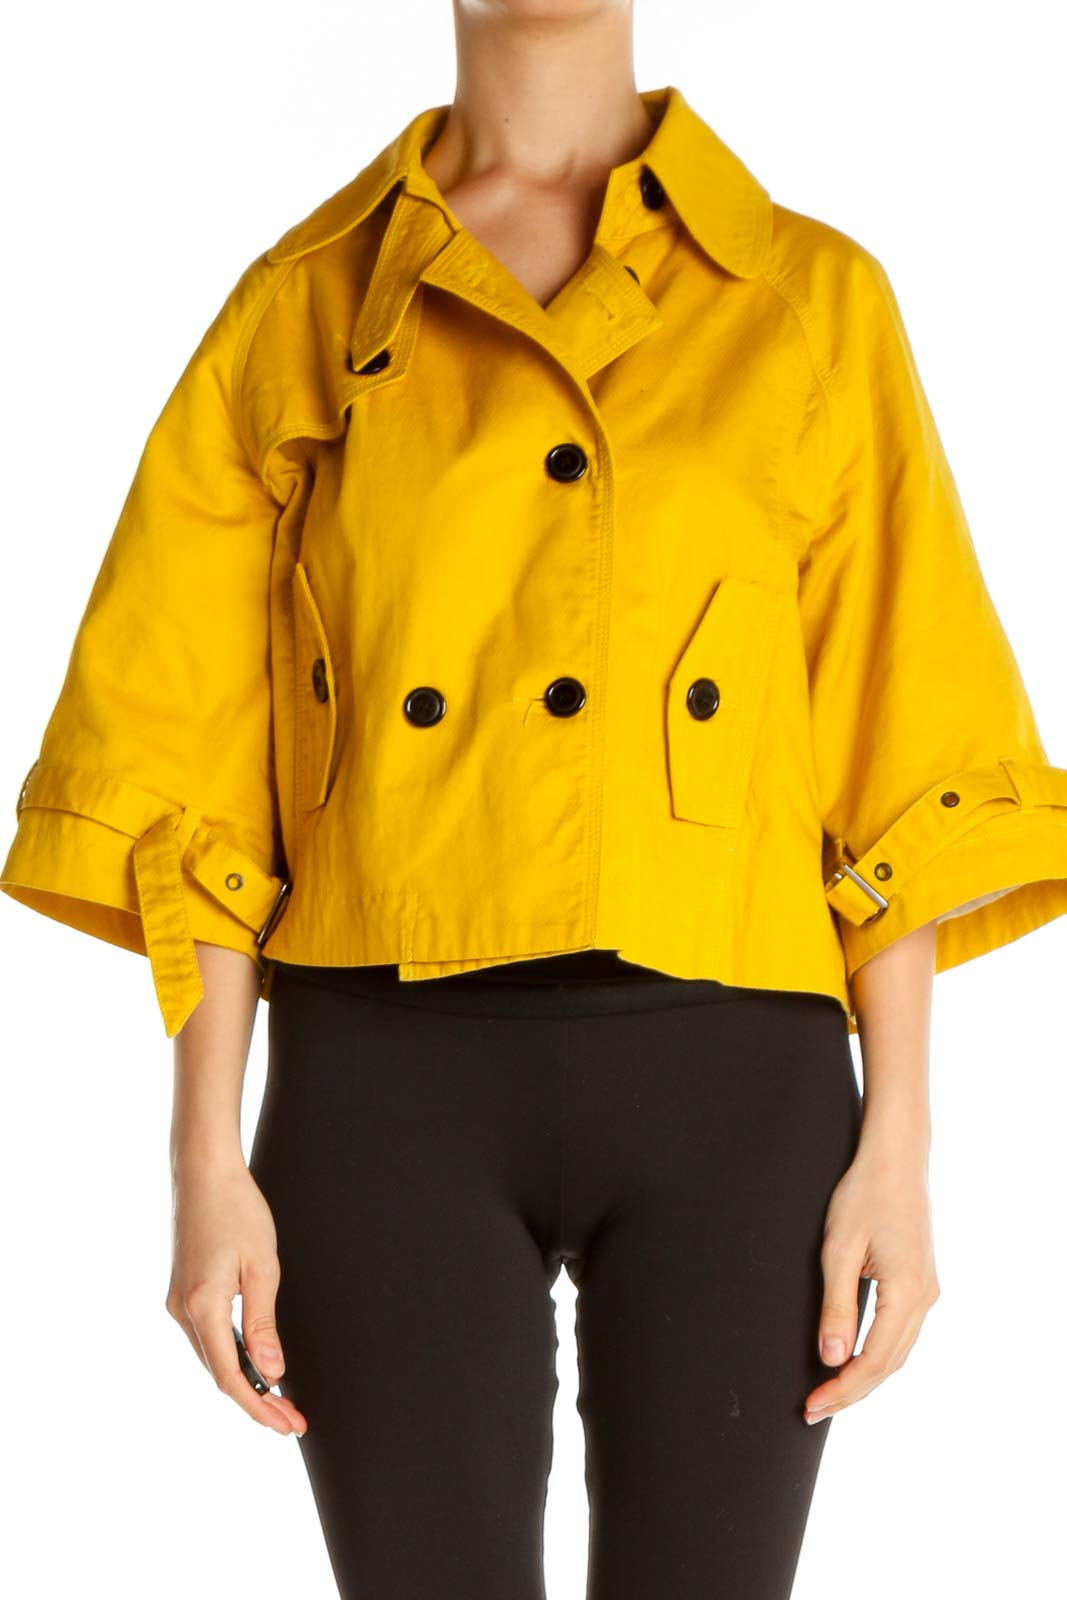 Yellow Jacket Front